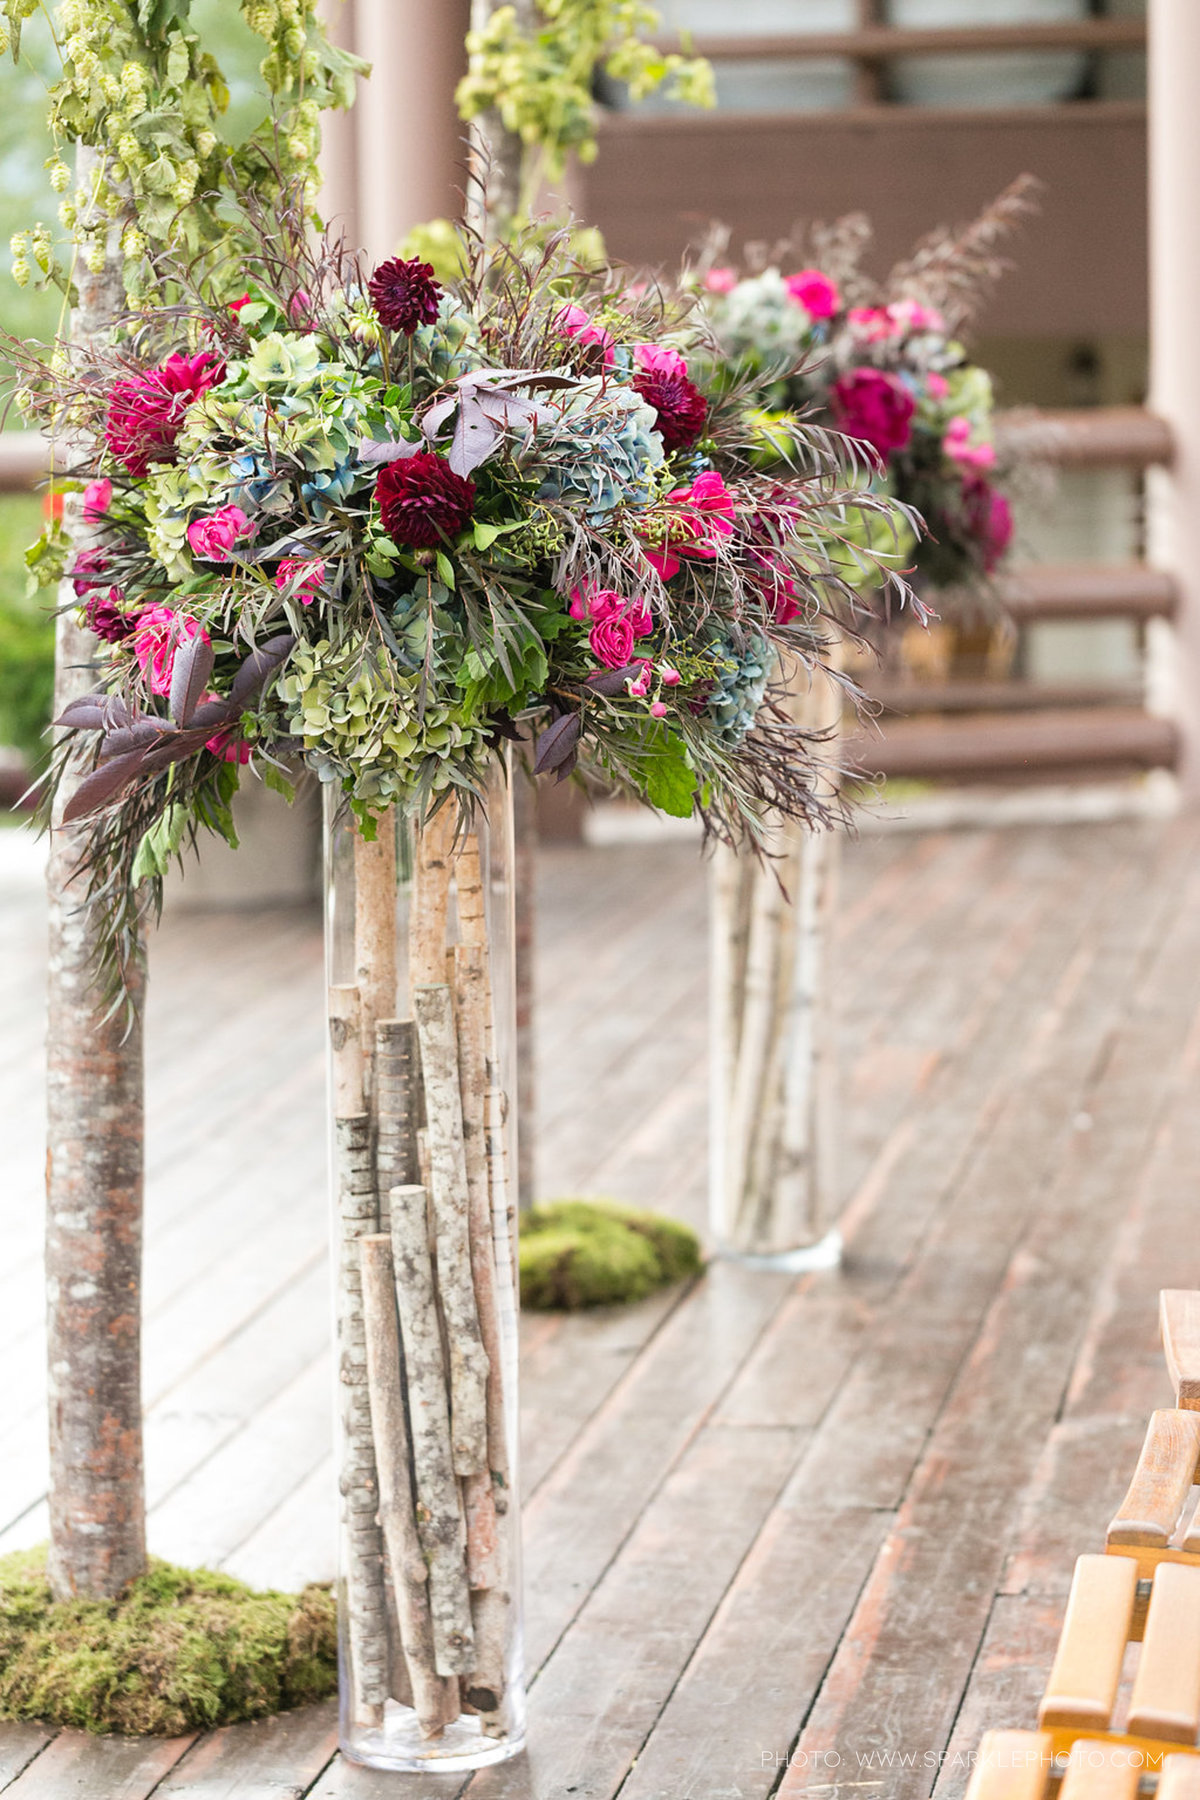 Utah Florist_Summer Weddings in Park City_Colorful Wedding_Luxe Mountain Weddings_Stein Eriksen Lodge Weddings_Artisan Bloom--75